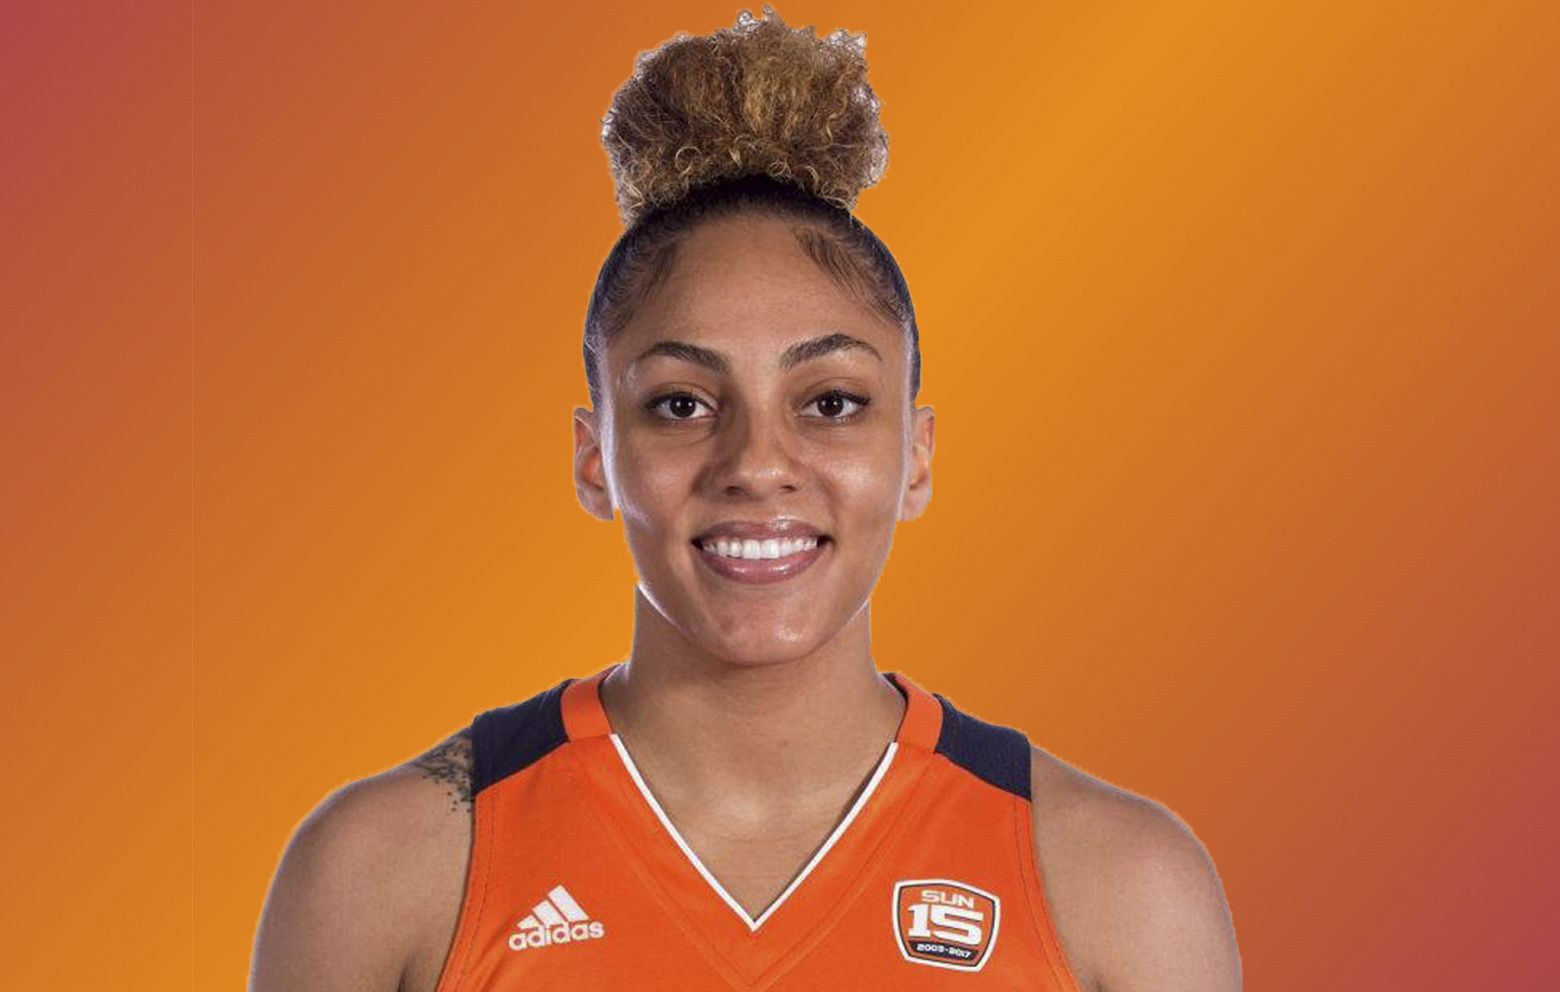 JESSICA JANUARY has signed with the Chicago Sky in the WNBA